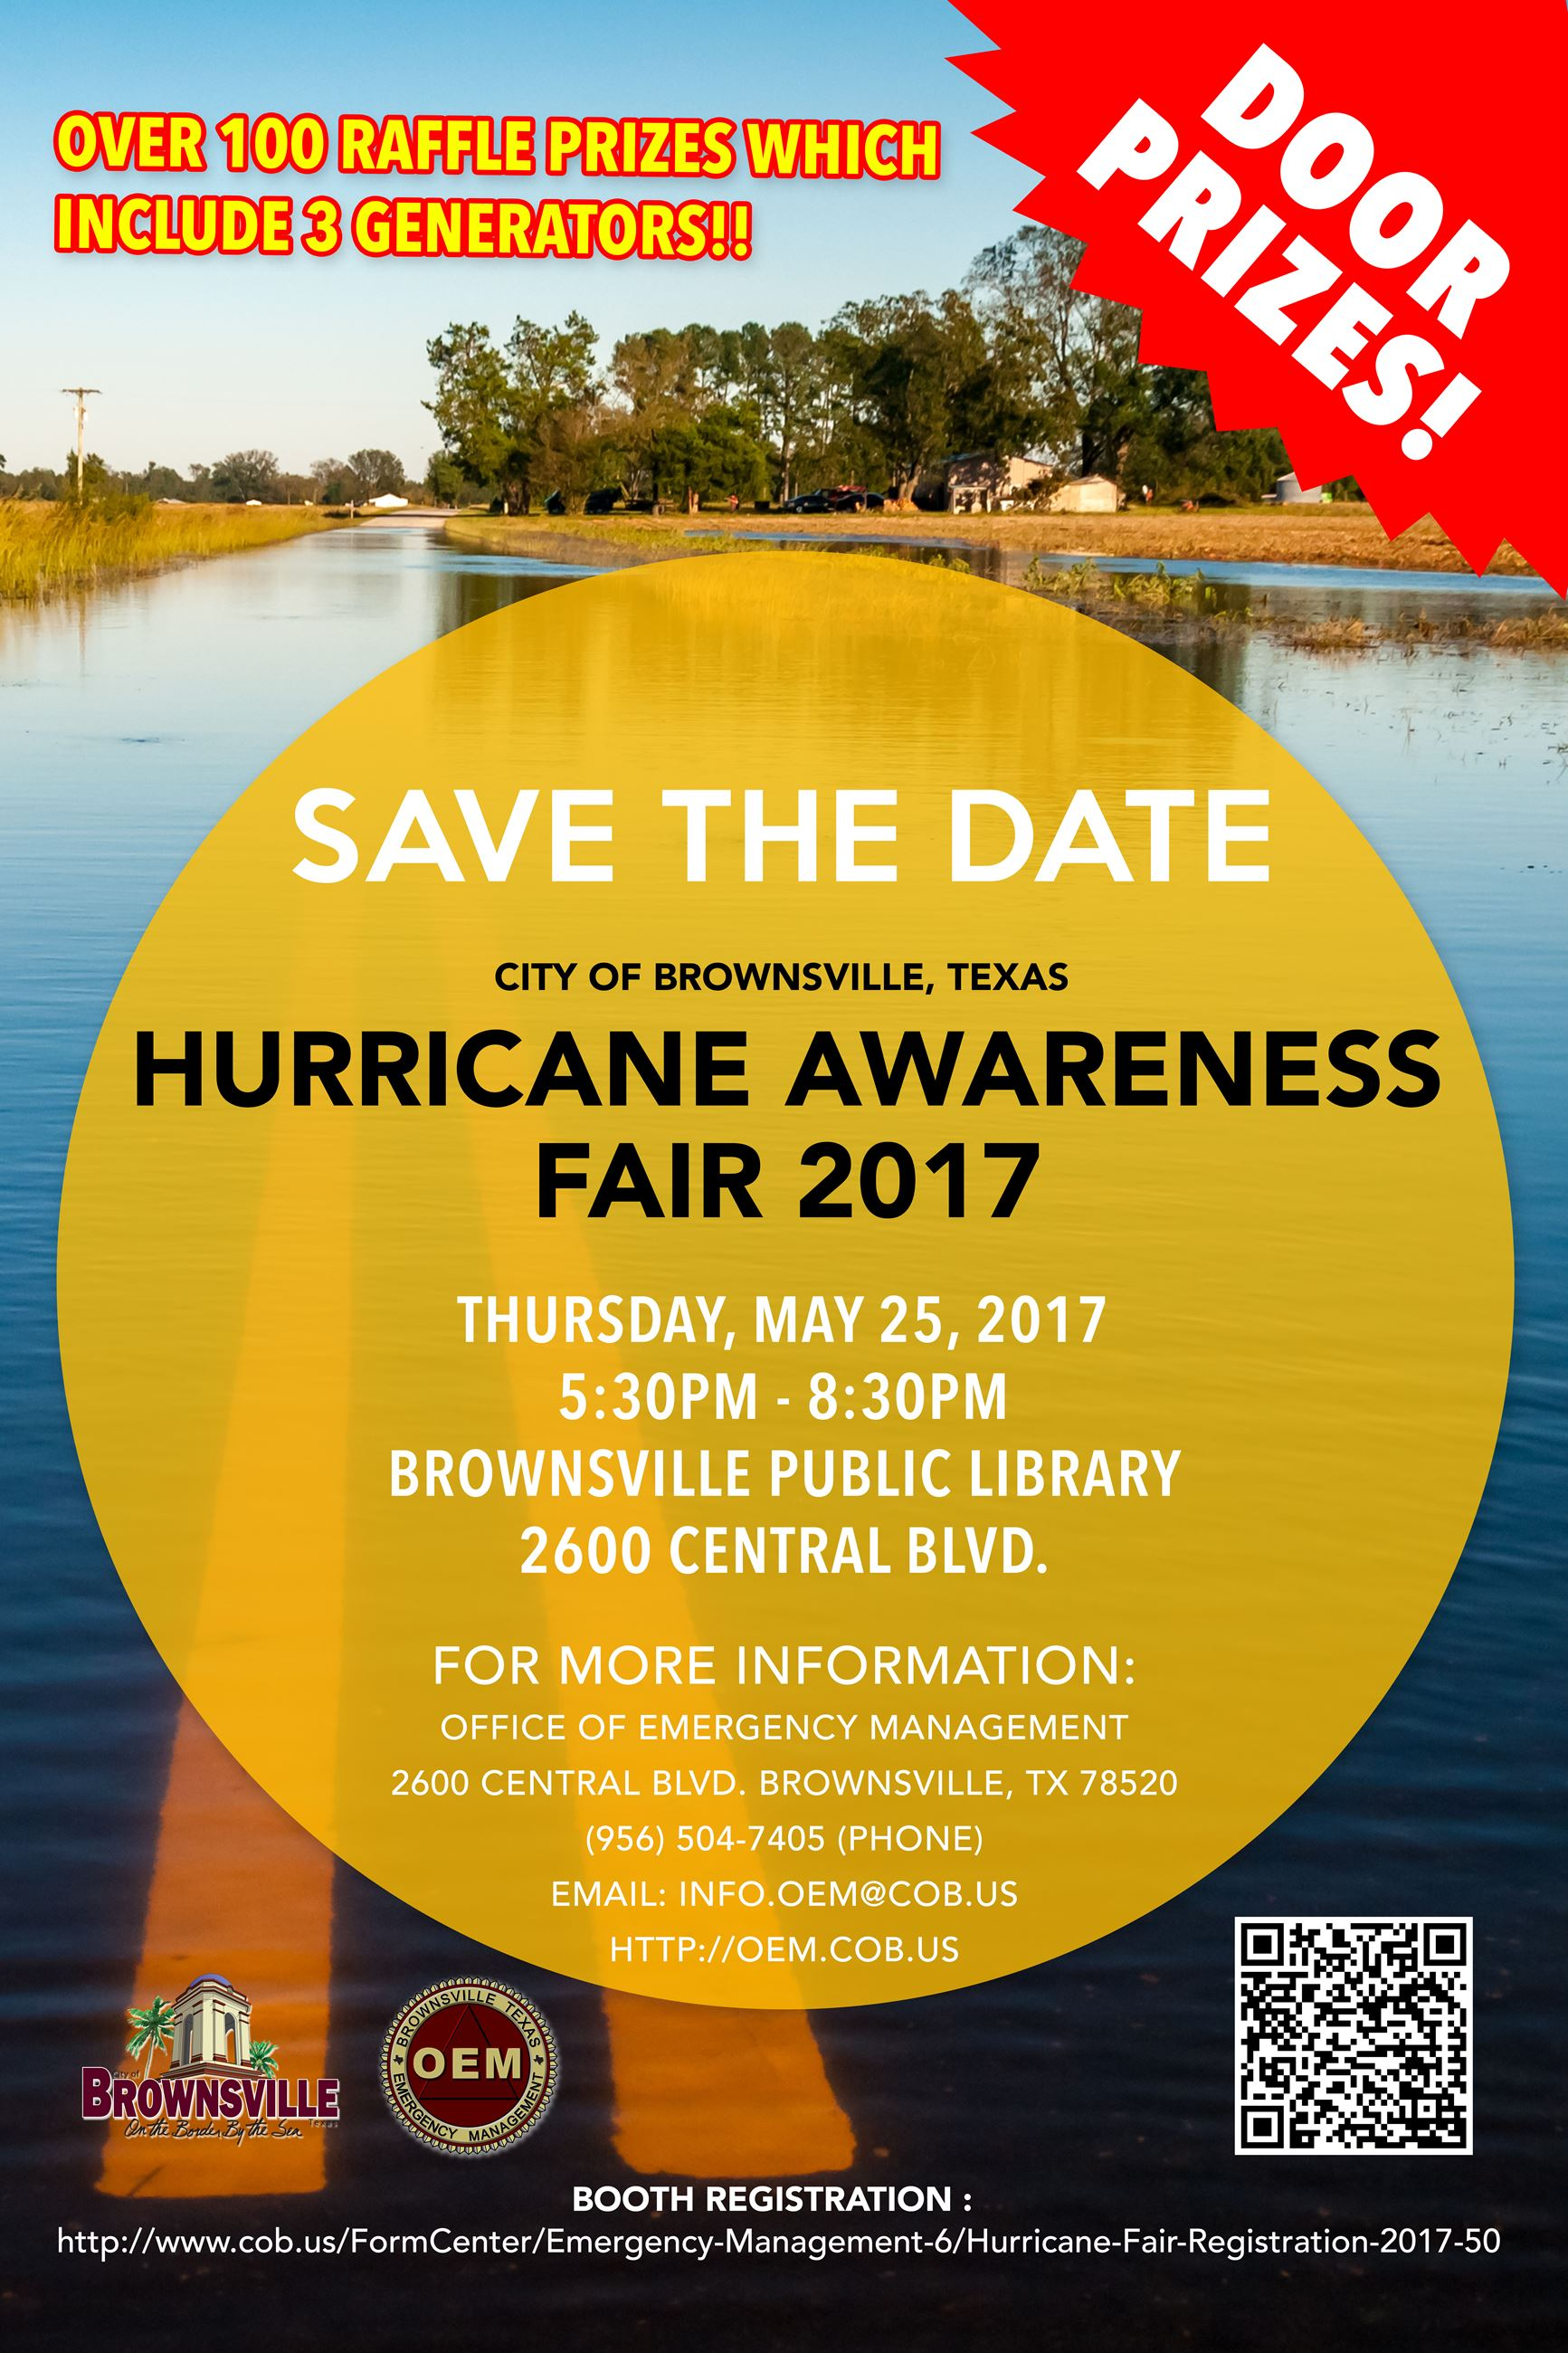 Hurricane Awareness Fair 2017